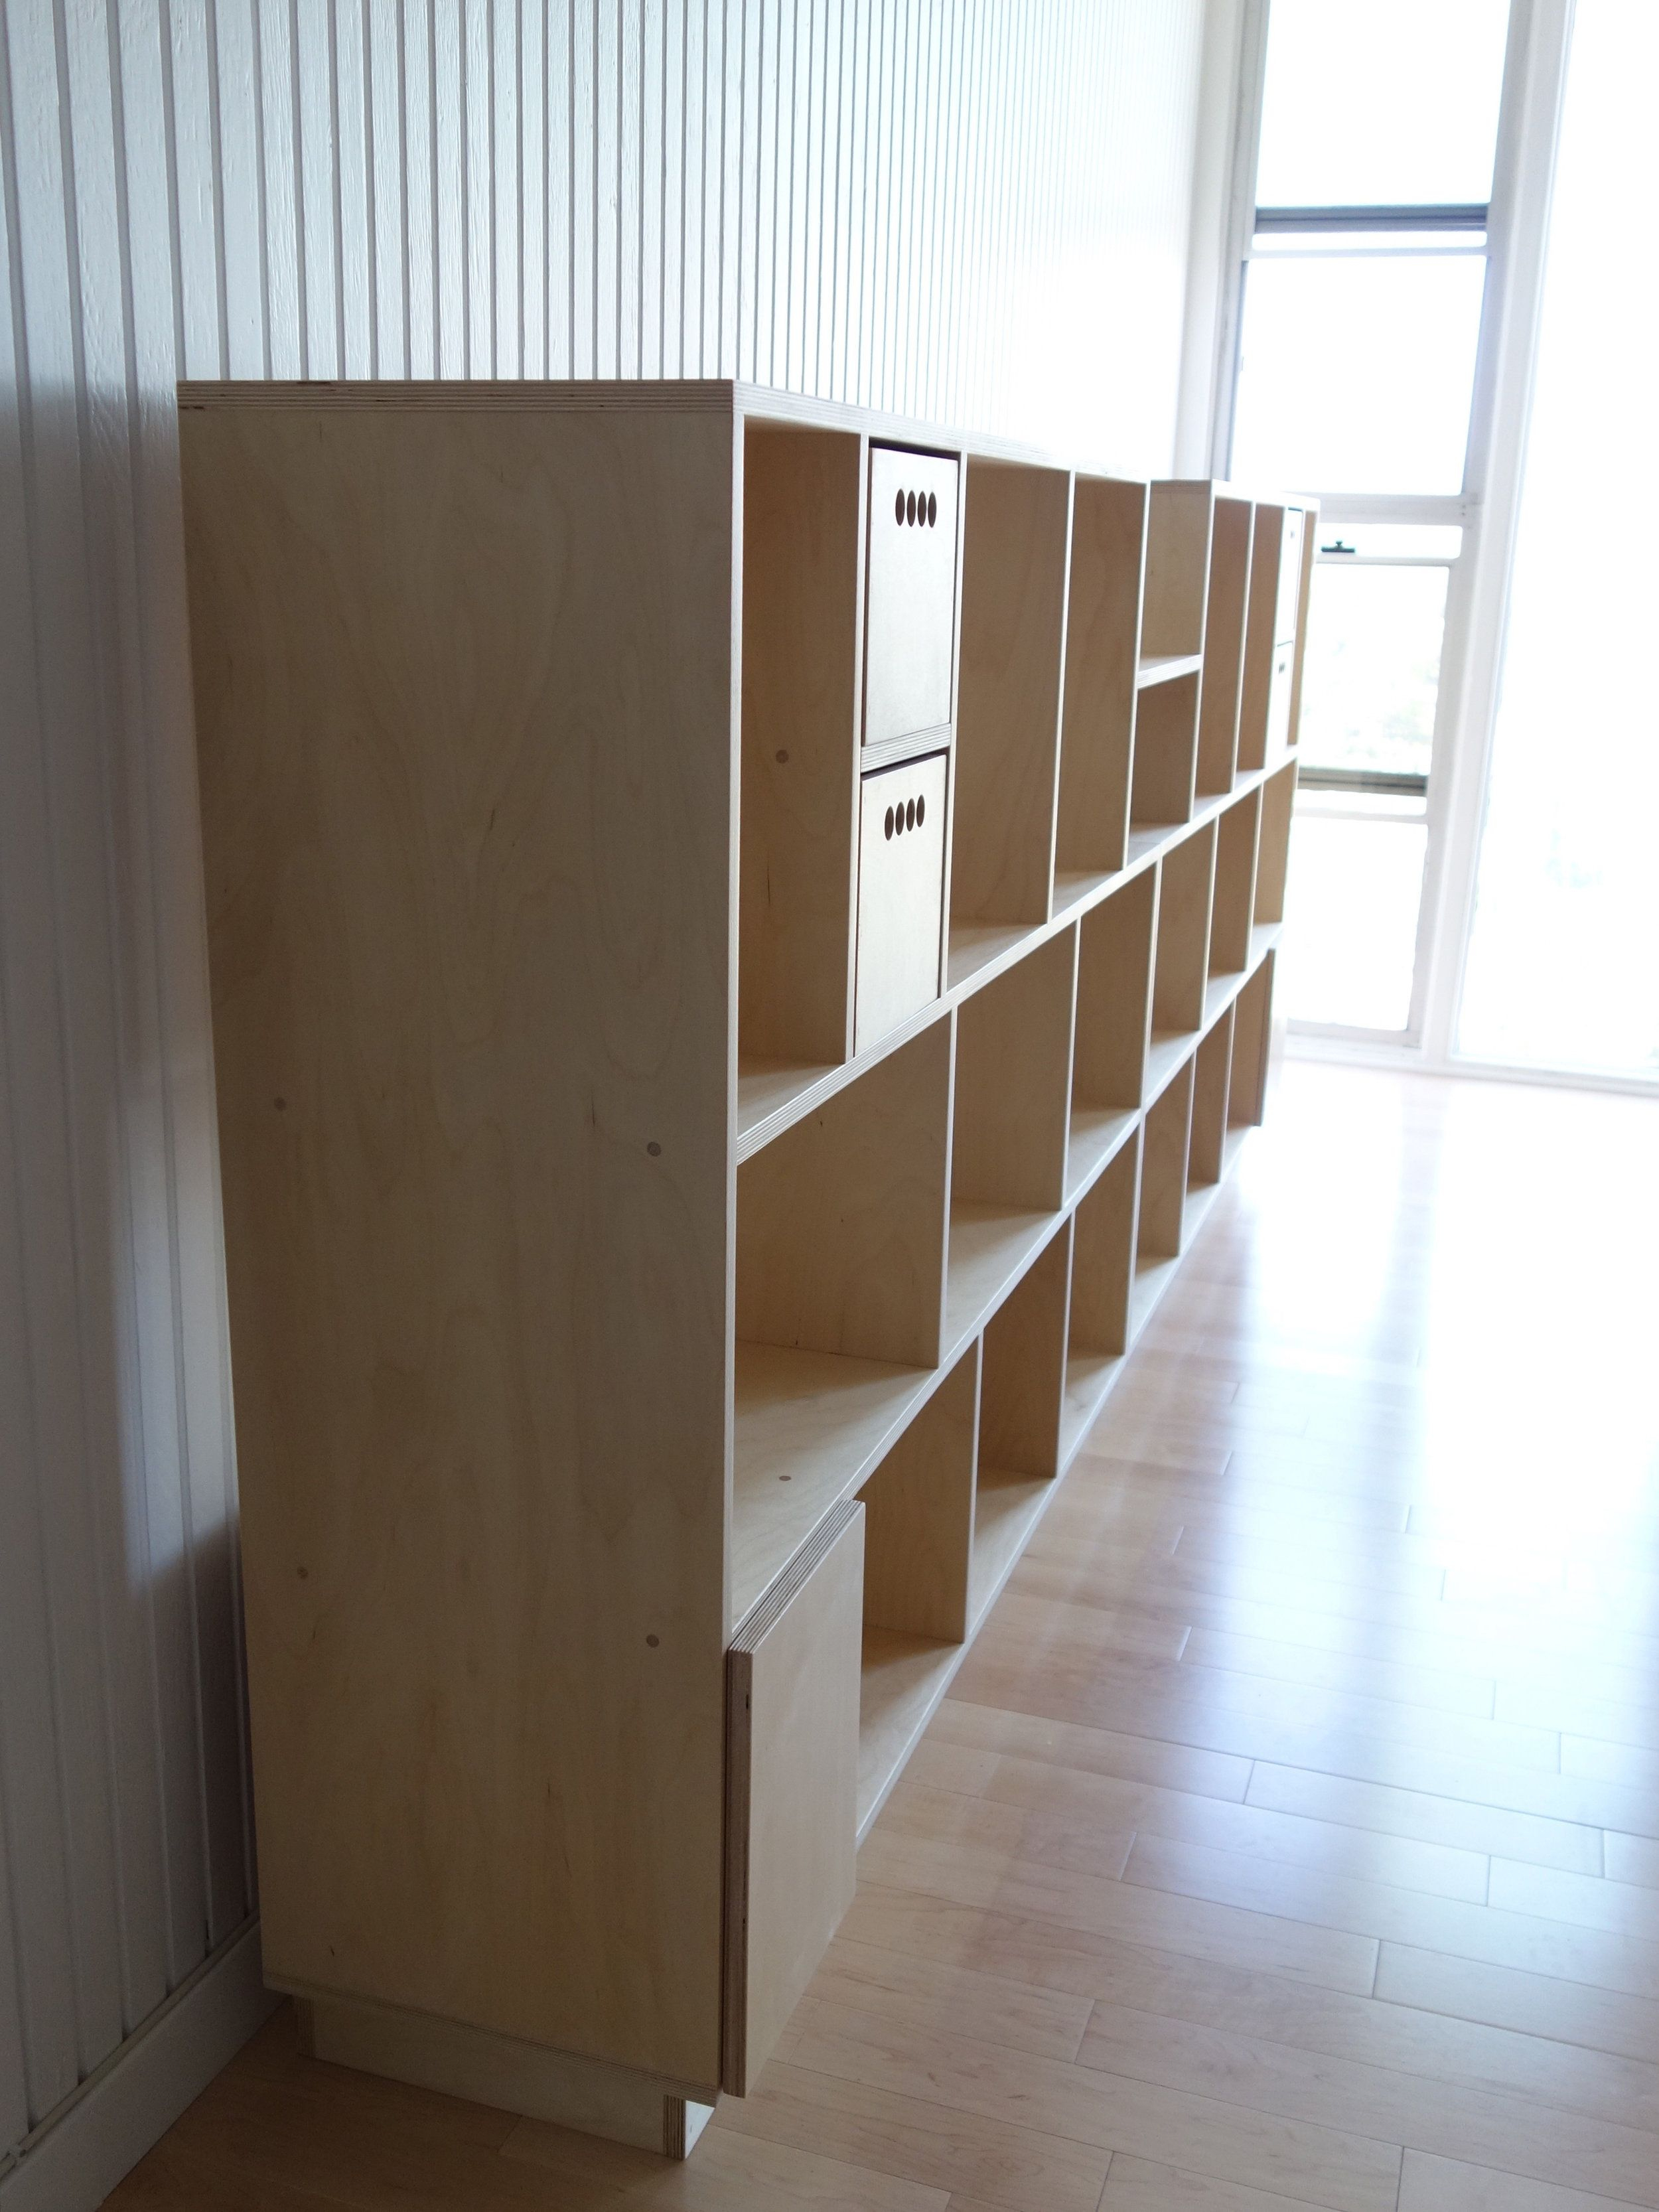 Record Shelving product image 1